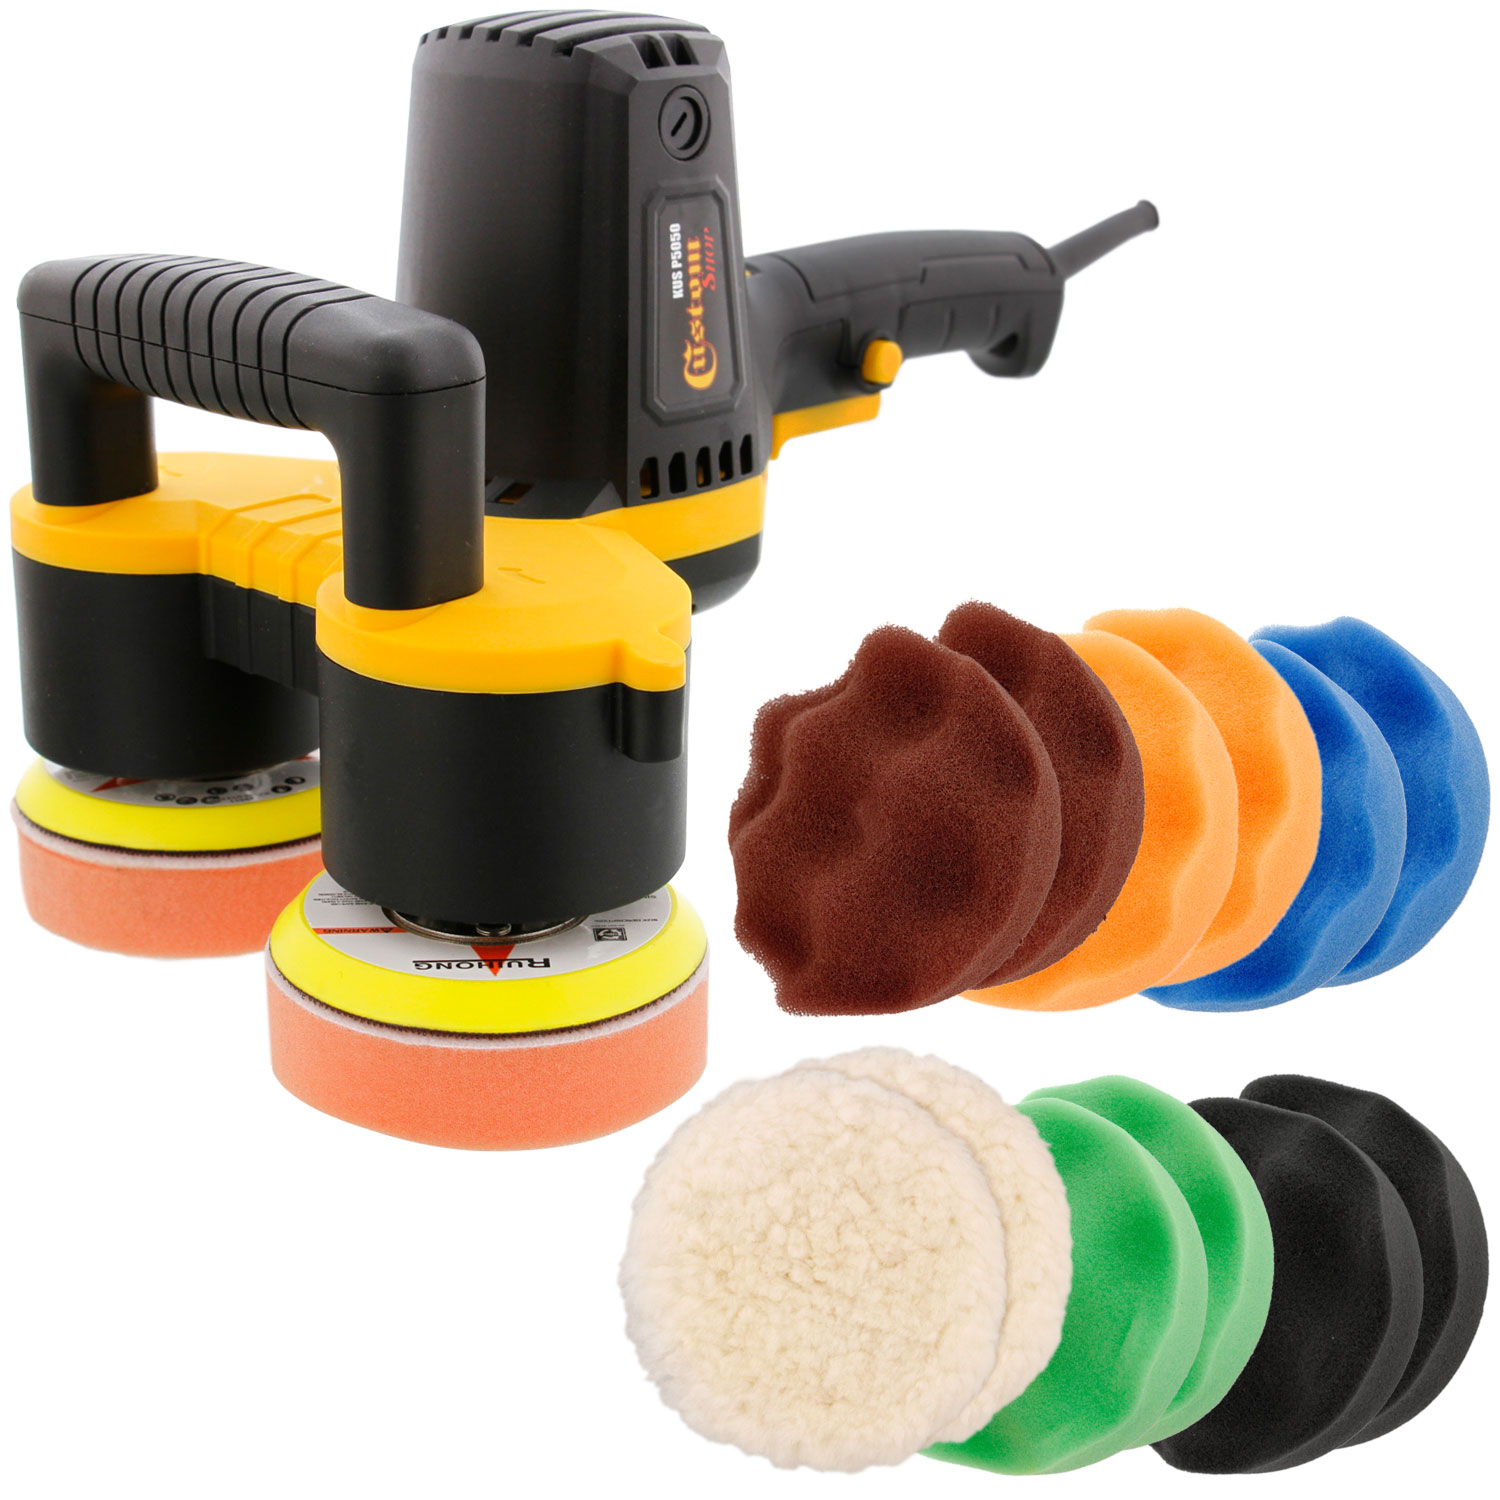 "Custom Shop 4"" Dual Head Variable Speed Random Orbit Dual-Action Polisher w/ Waffle Foam Buffing and Polishing 12 Pad"